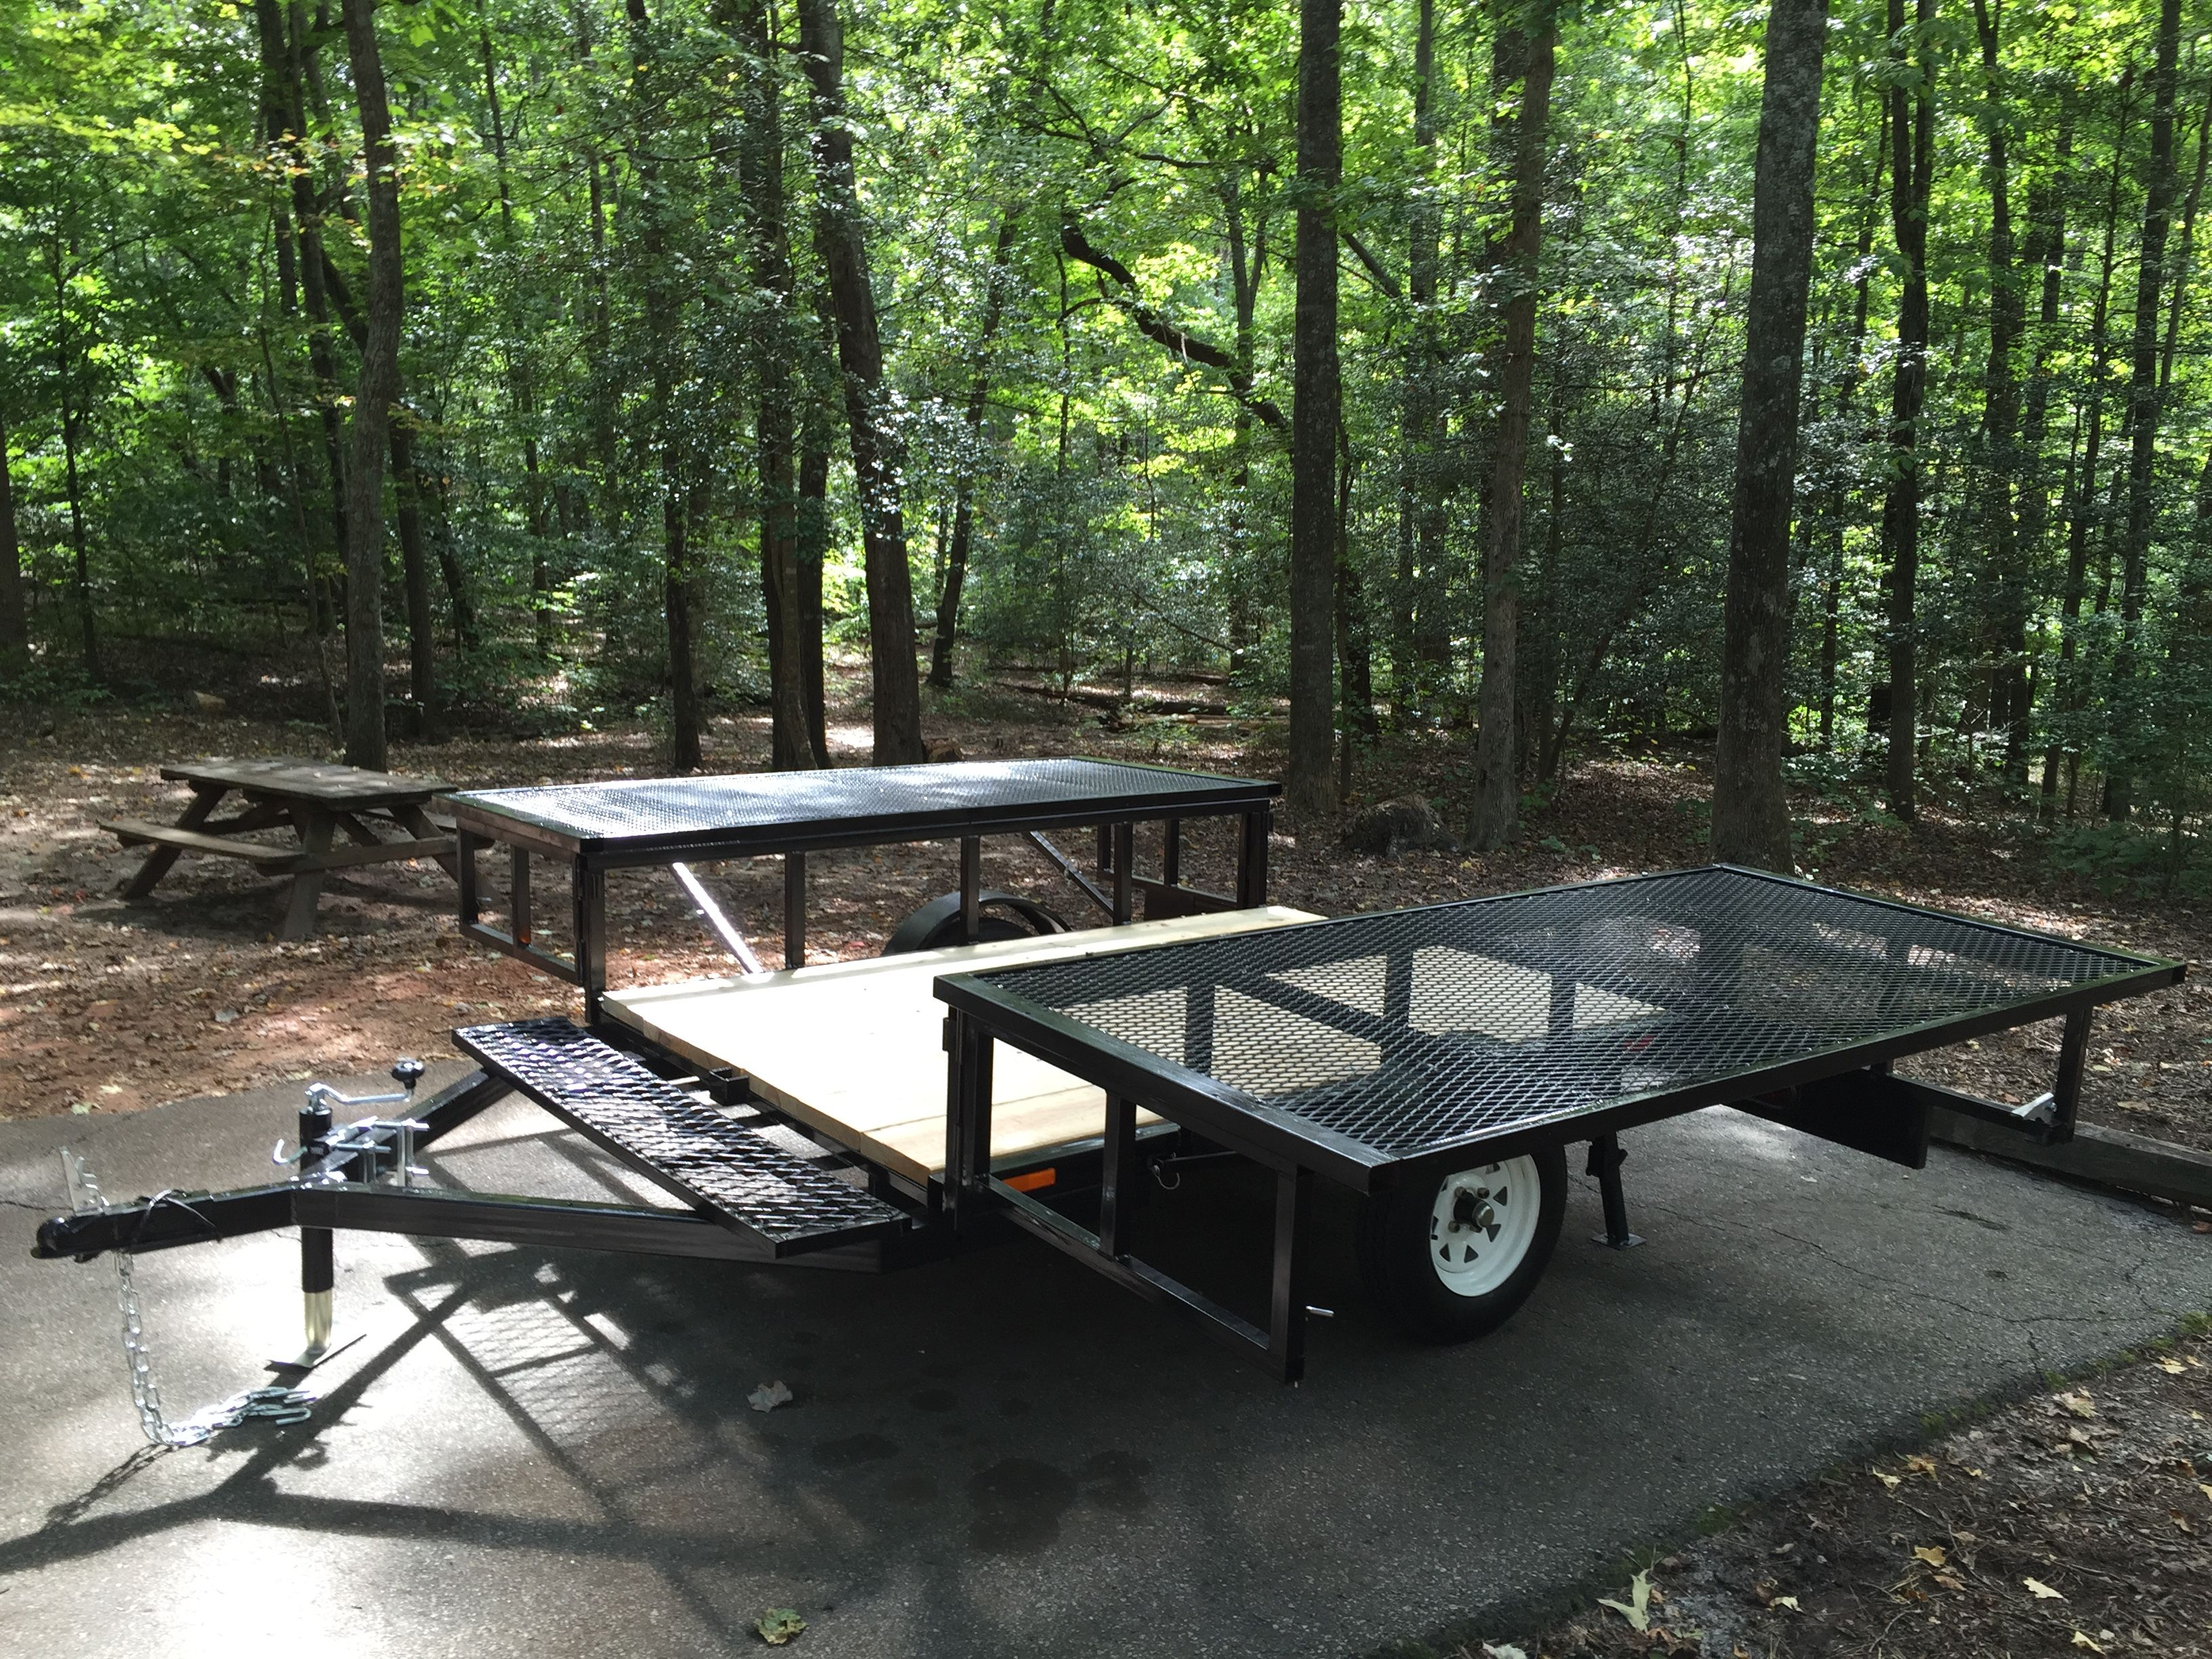 Double Duty Utility Camper Trailer Makes Tent Camping A Breeze!